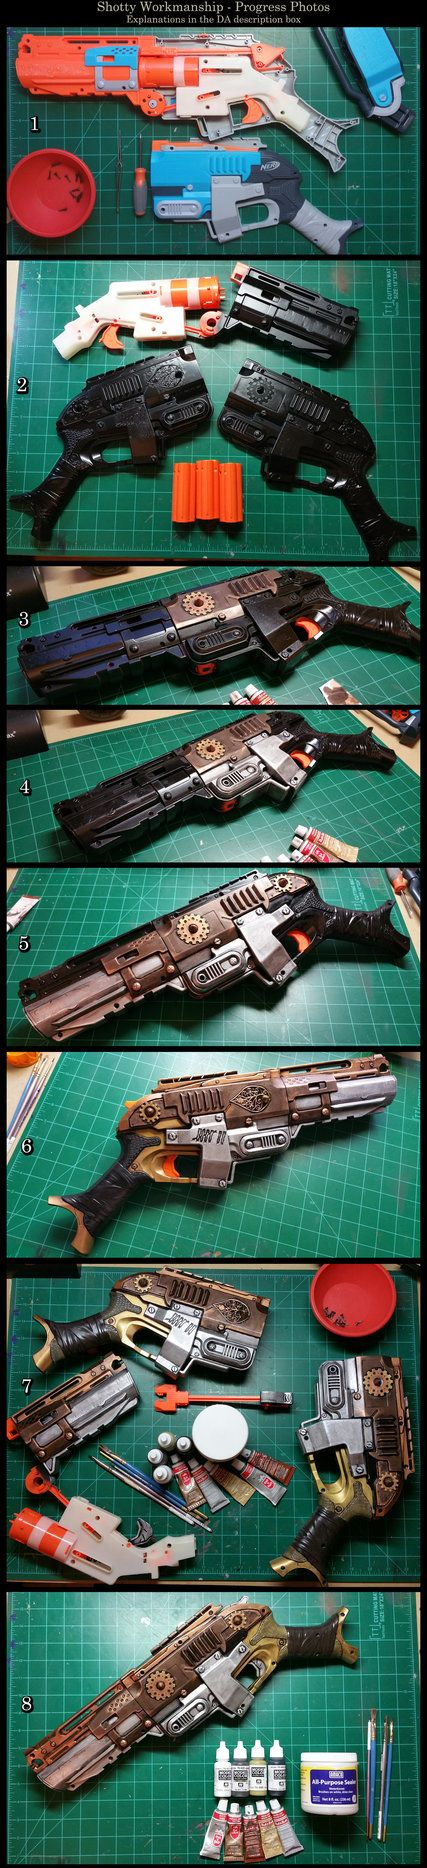 Steampunk Sledgefire - Painting Tutorial by CaelynTek.deviantart.com on @DeviantArt